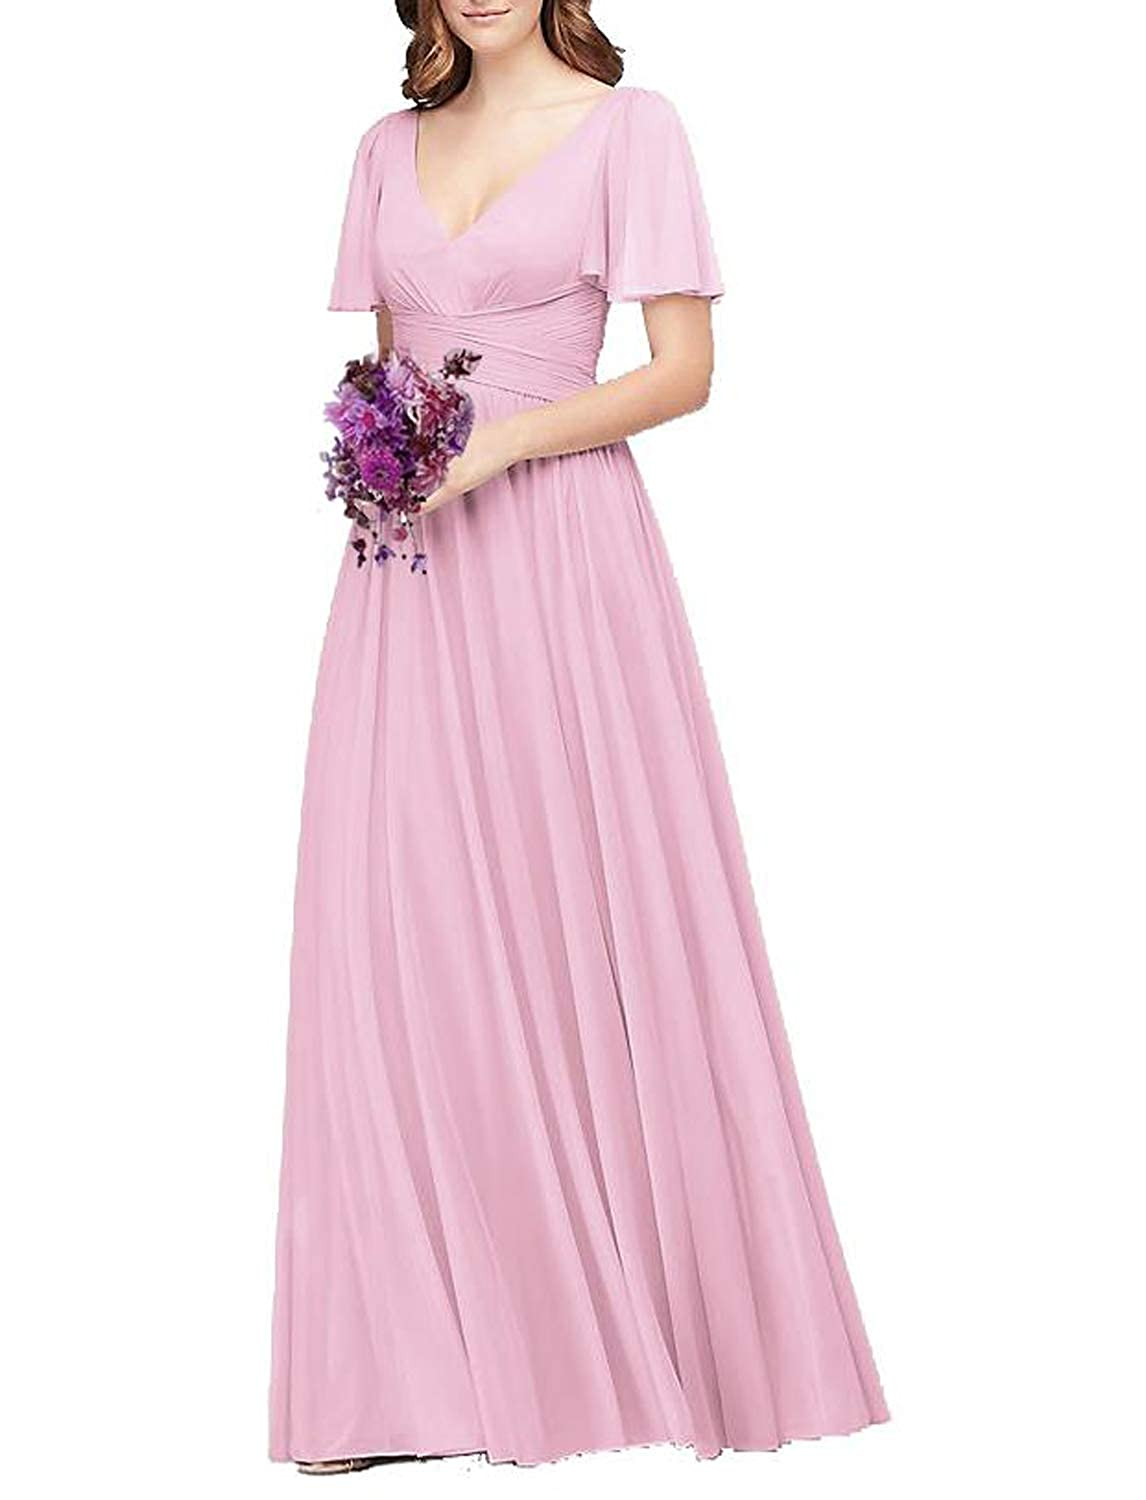 Baby Pink Flutter Sleeve Long Ball Prom Gown for Women Formal Bridesmaid Dress Maxi Skirt